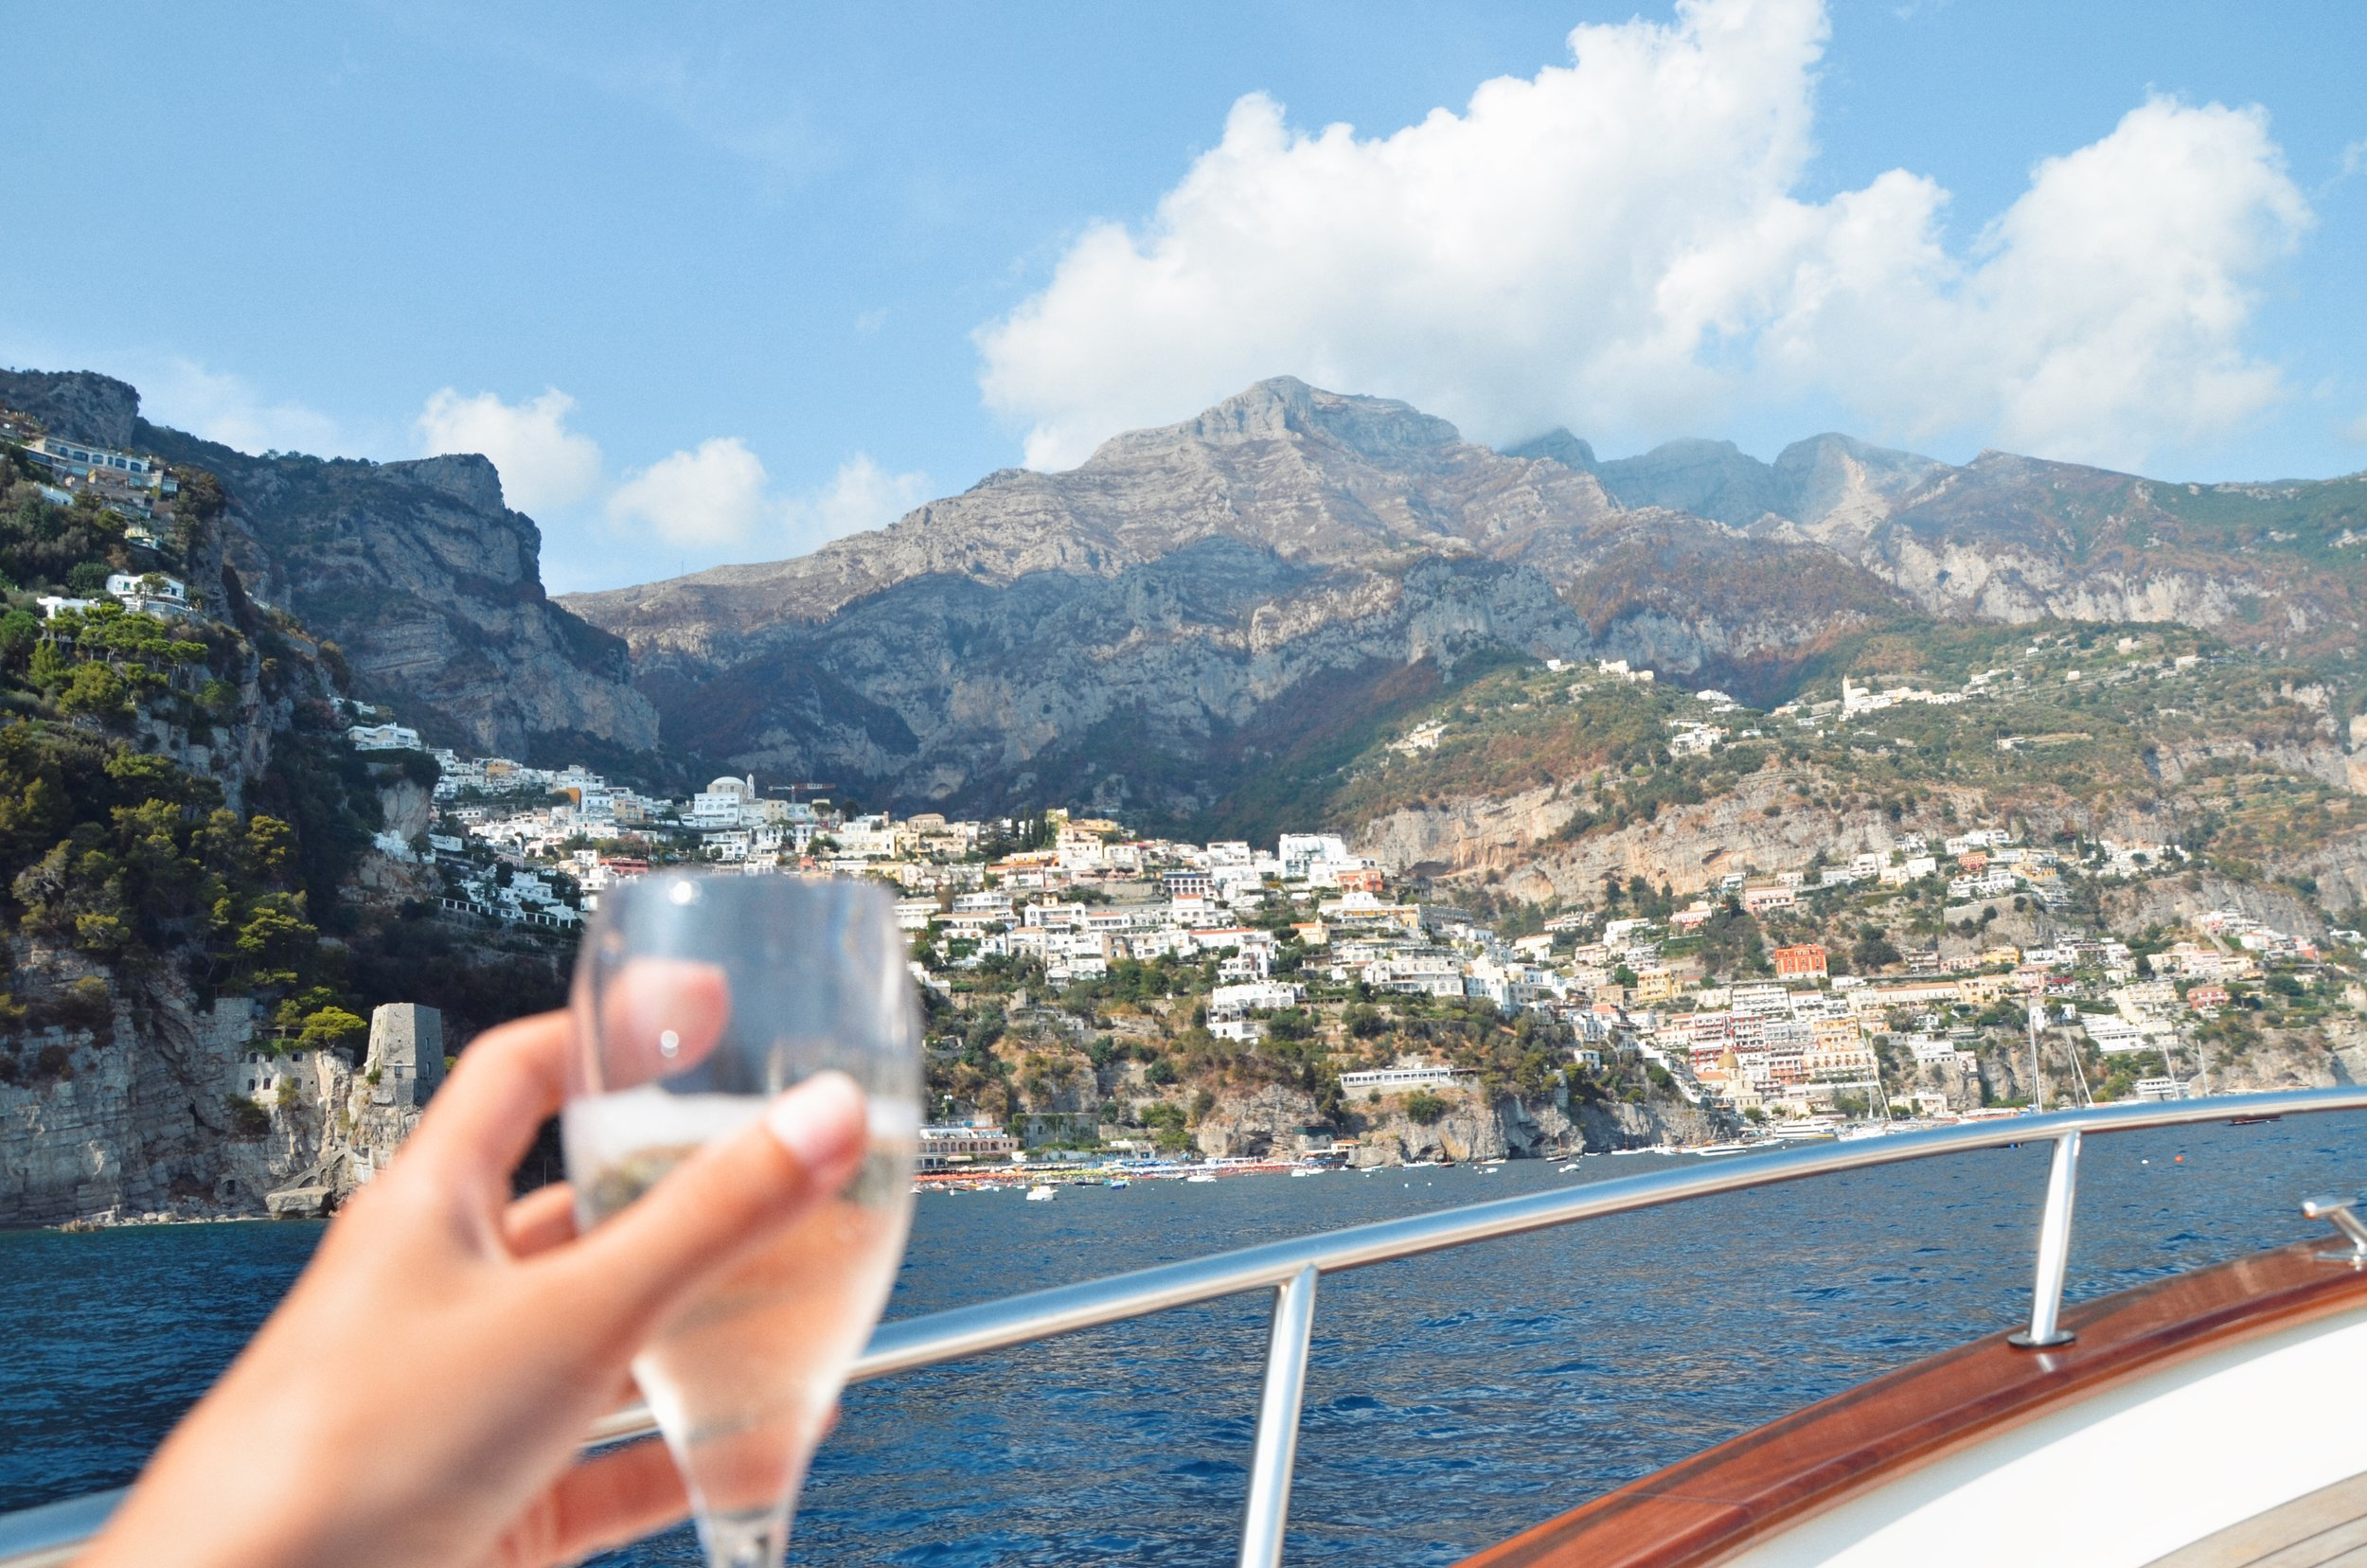 CRUISING ALONG THE COAST WITH PROSECCO IN HAND